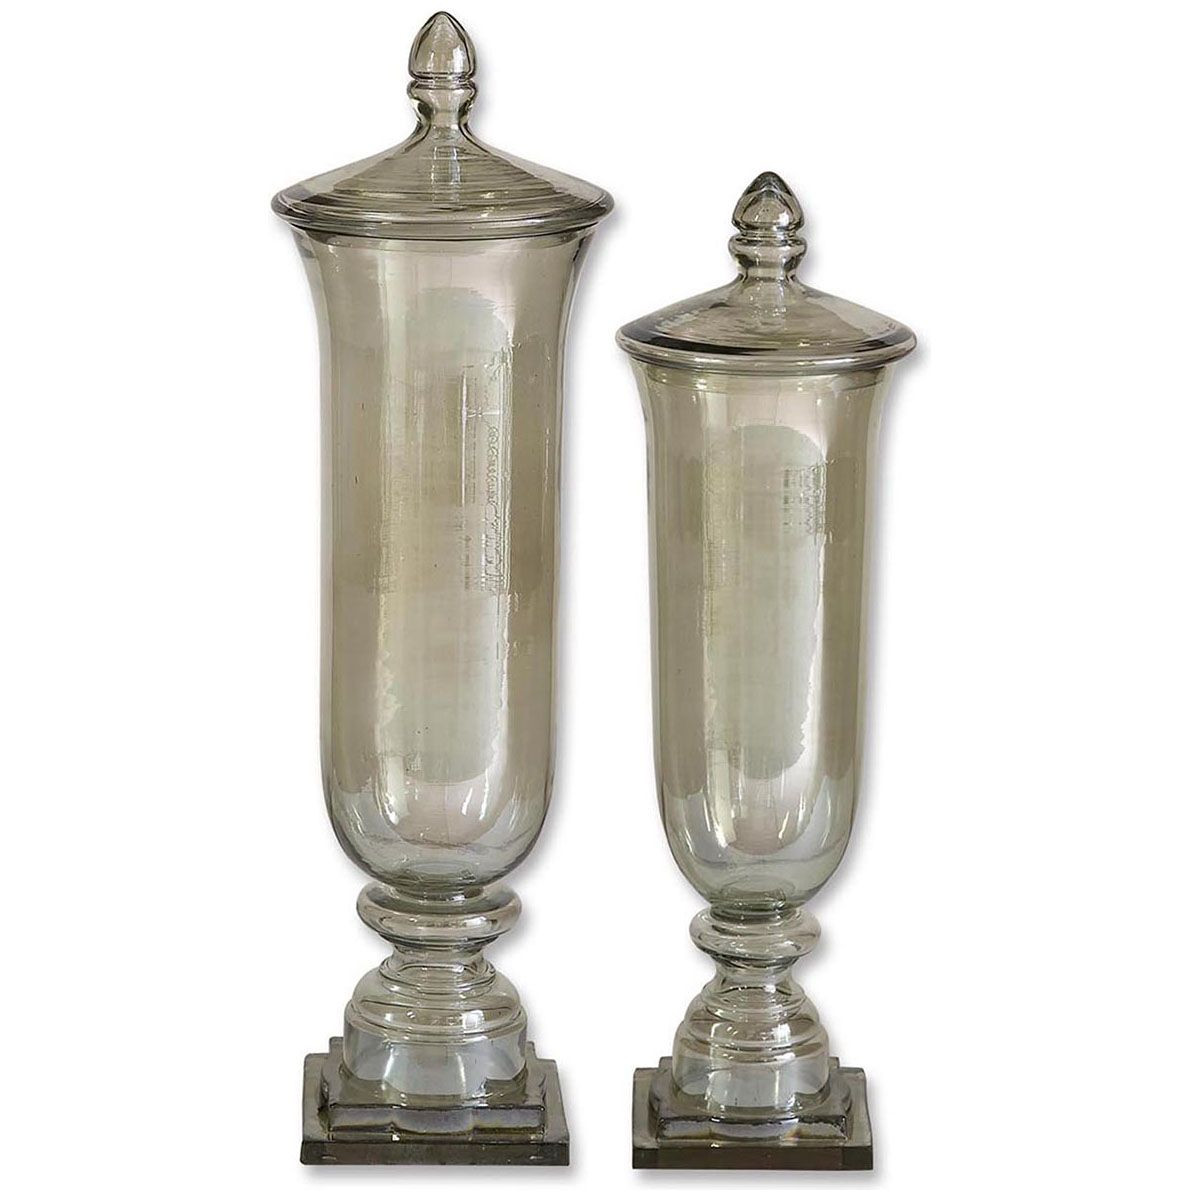 bell jar vase of uttermost gilli glass decorative containers set of 2 19148 throughout uttermost gilli glass decorative containers set of 2 19148